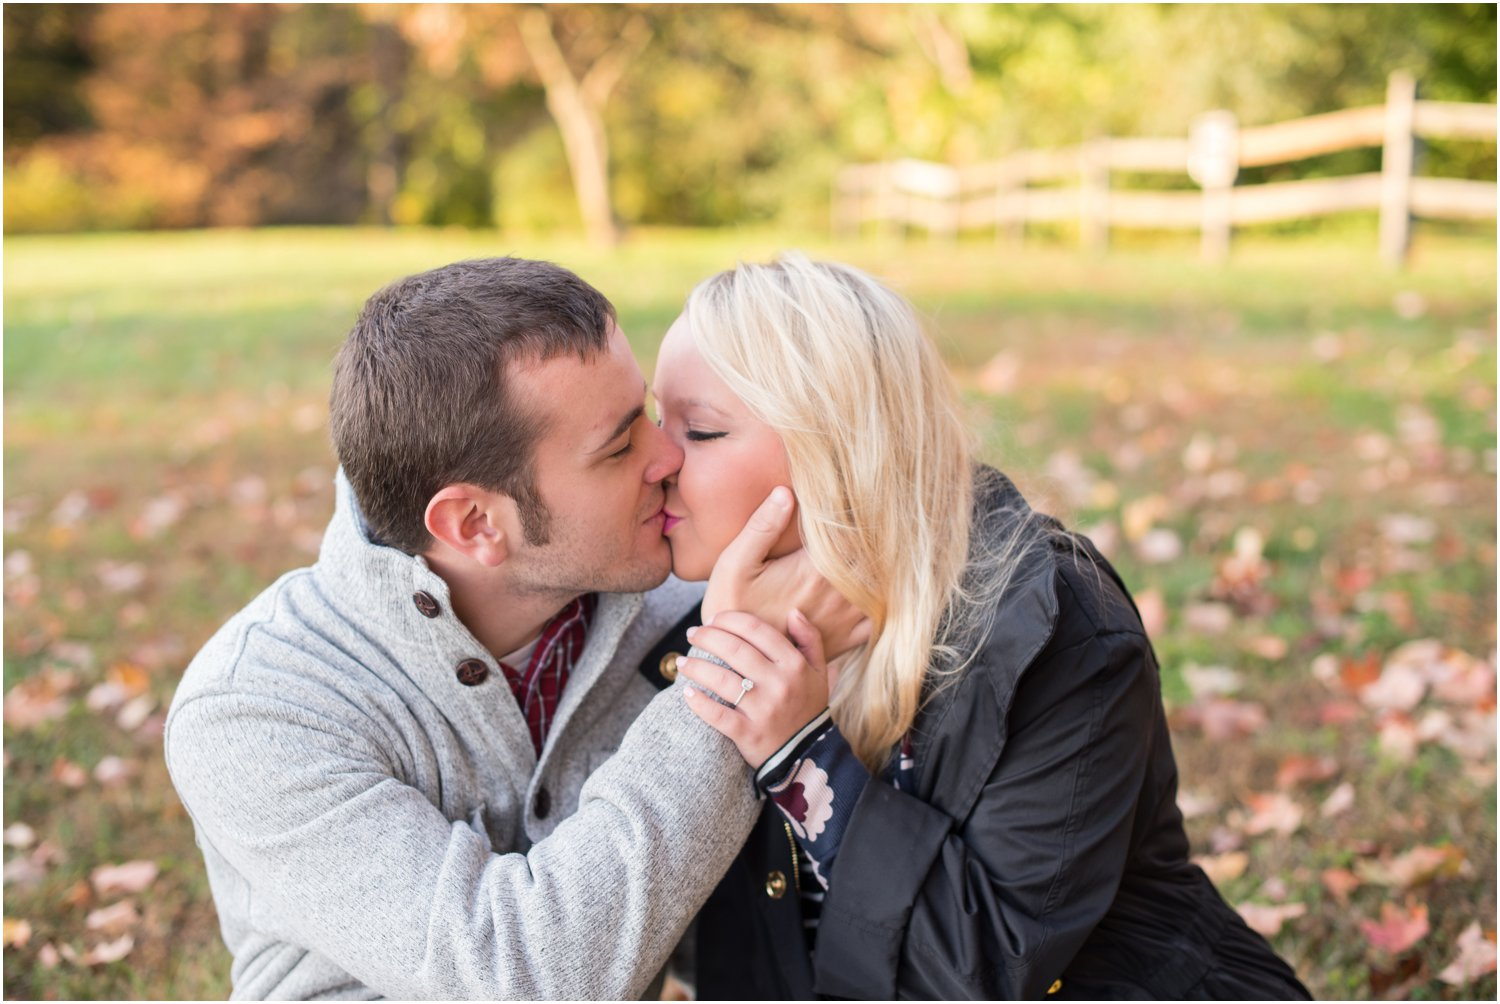 Beachmont-Christian-Camp-Fall-Engagement-Session-Chelsea-Blanch-Photography-2